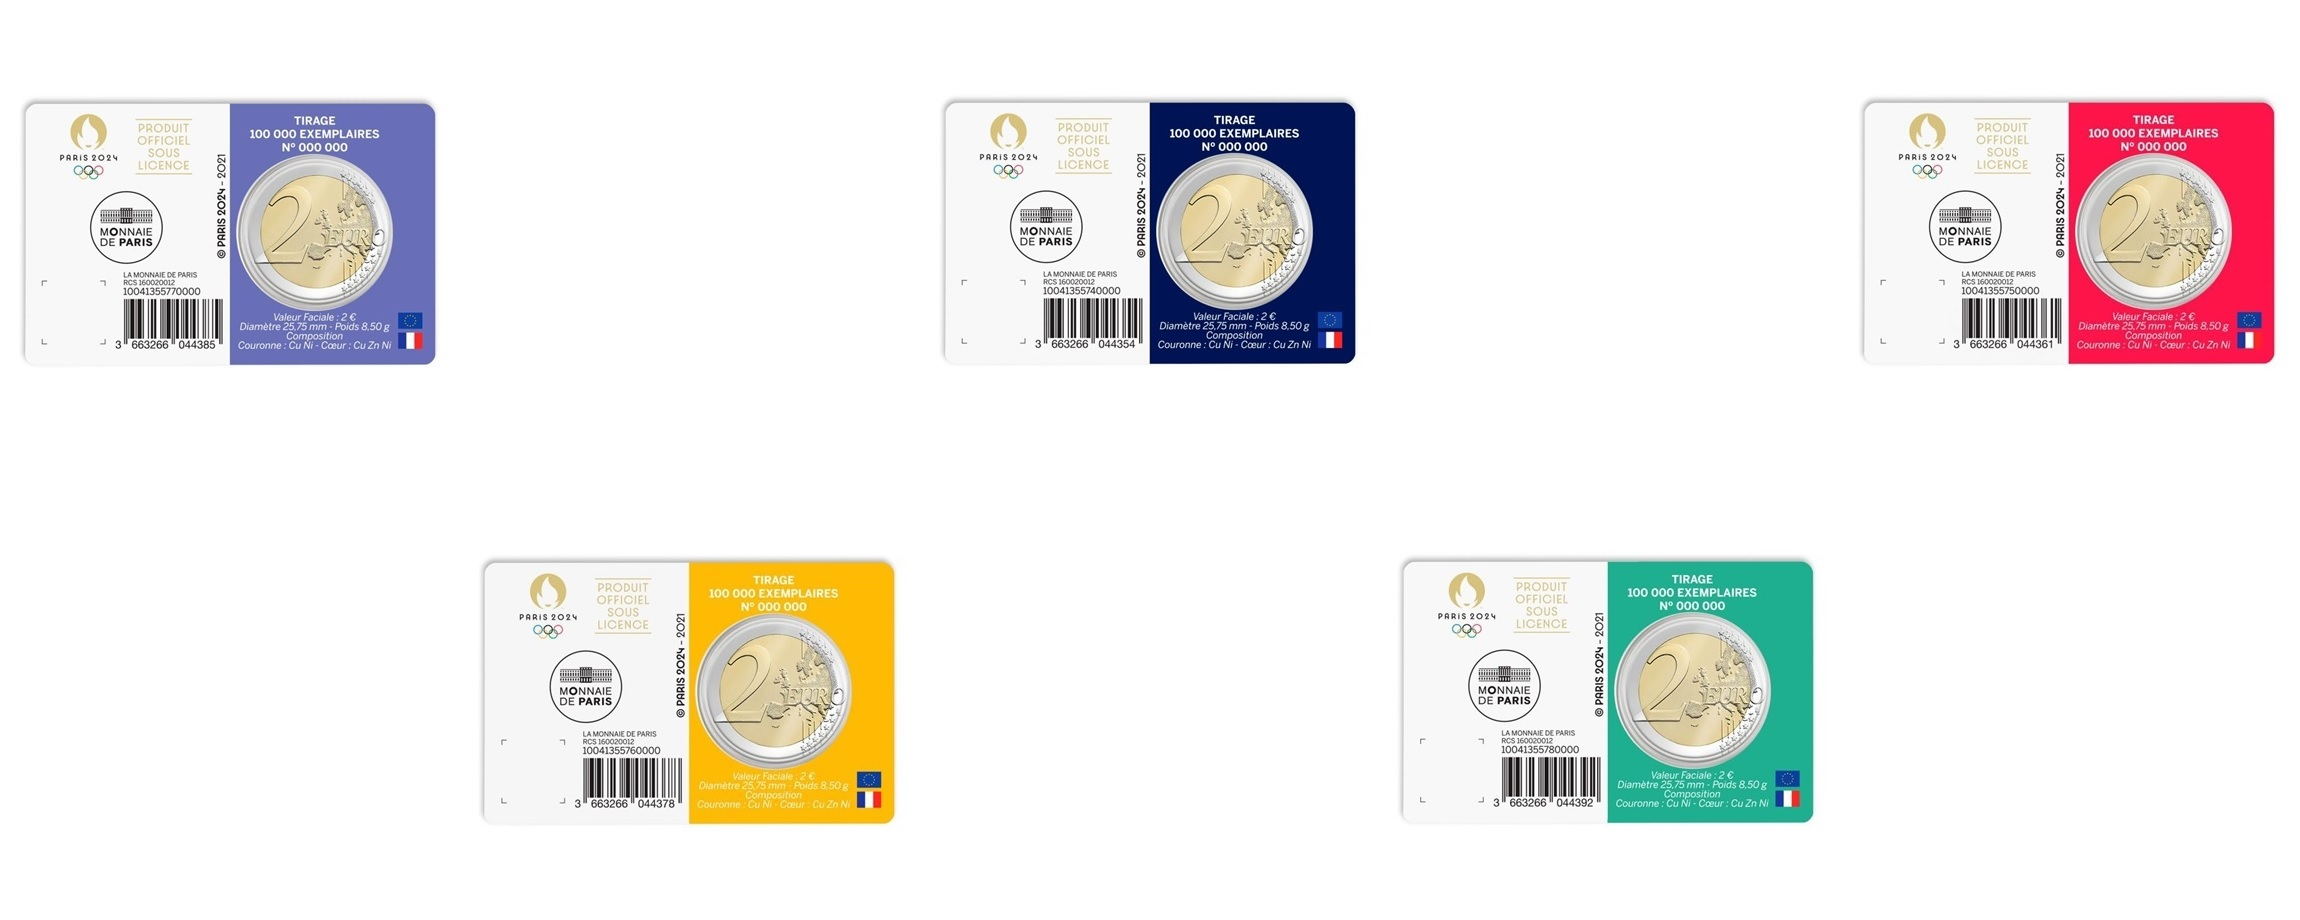 2 euro France 2021 BU - Paris Olympic Games (5 coin cards lot) Back (zoom)